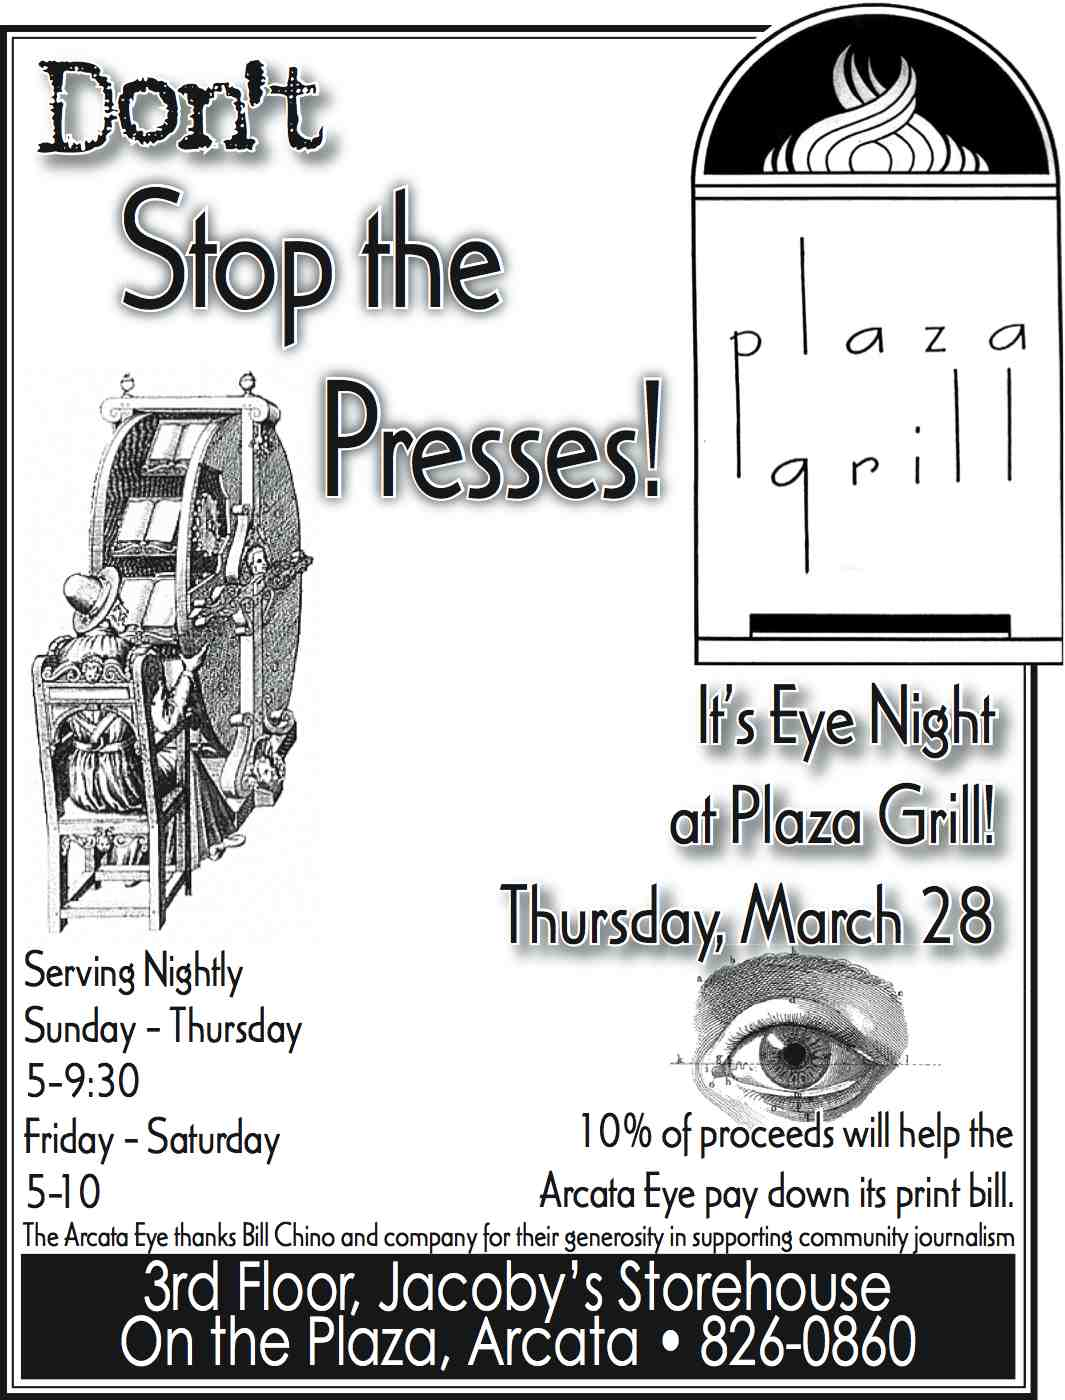 plaza-grill-eye-night